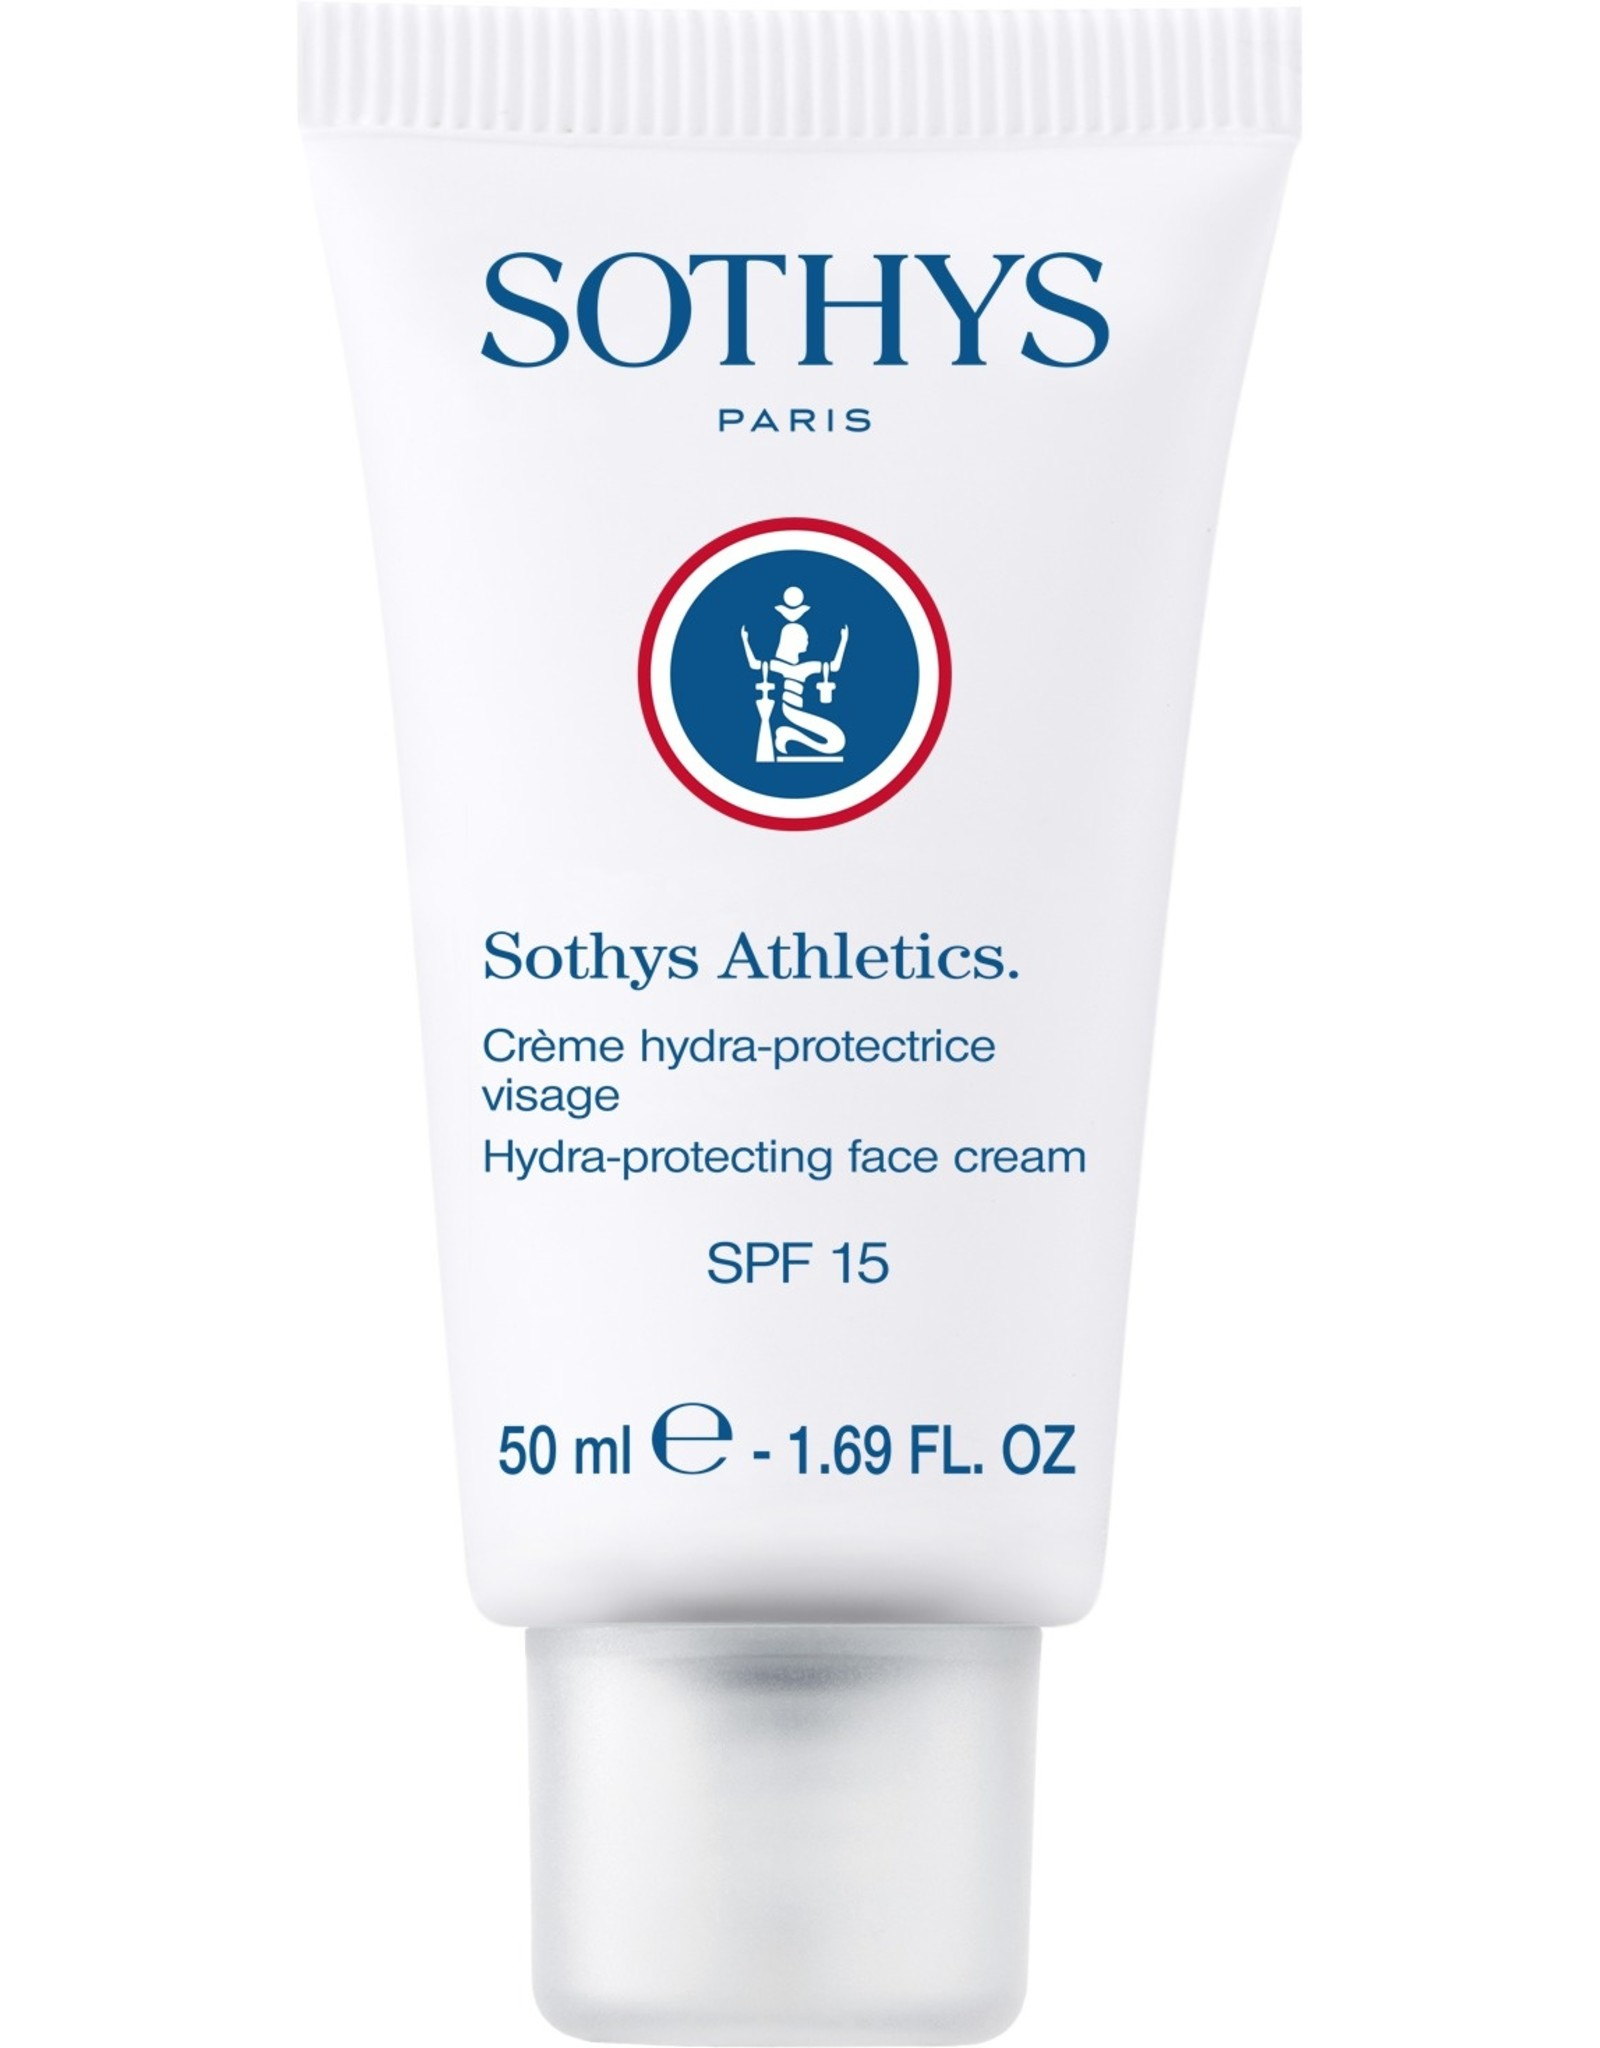 SOTHYS Hydra-protecting face cream, tinted  SPF15 - Sothys